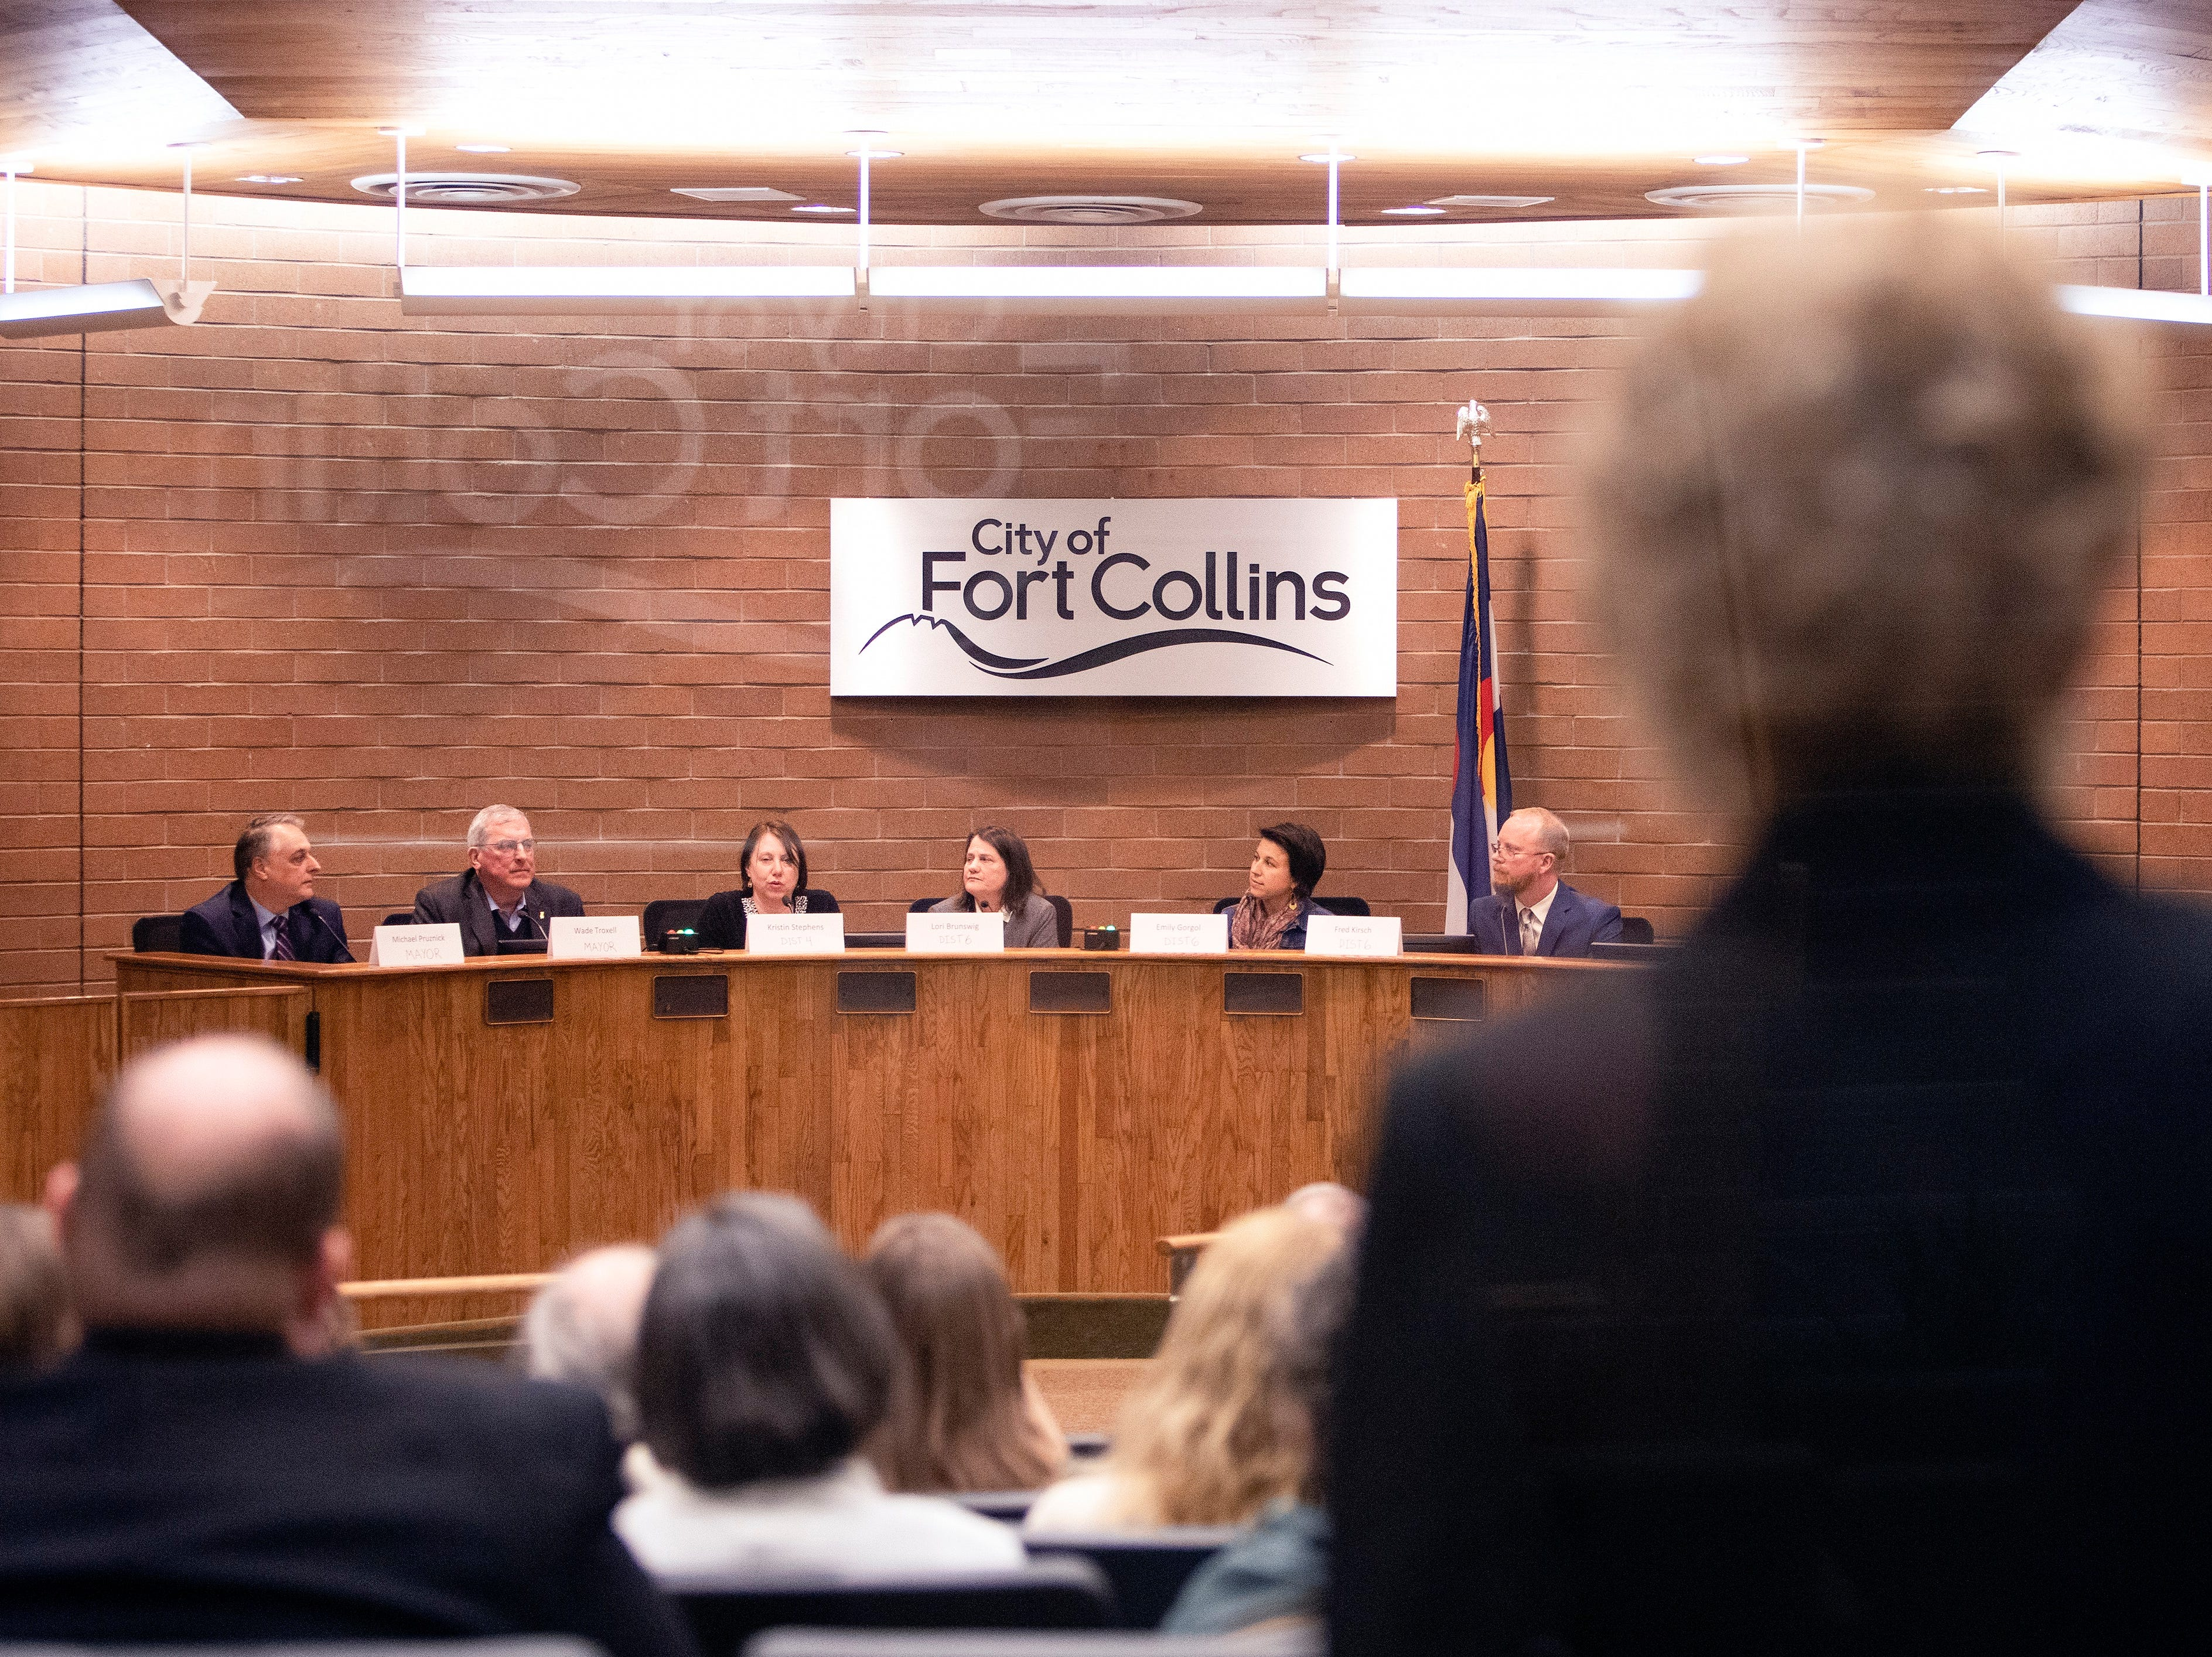 Community members  watch as candidates for the Fort Collins City Council election answer questions in a forum hosted by The League of Women Voters of Larimer County at City Hall on March 6.